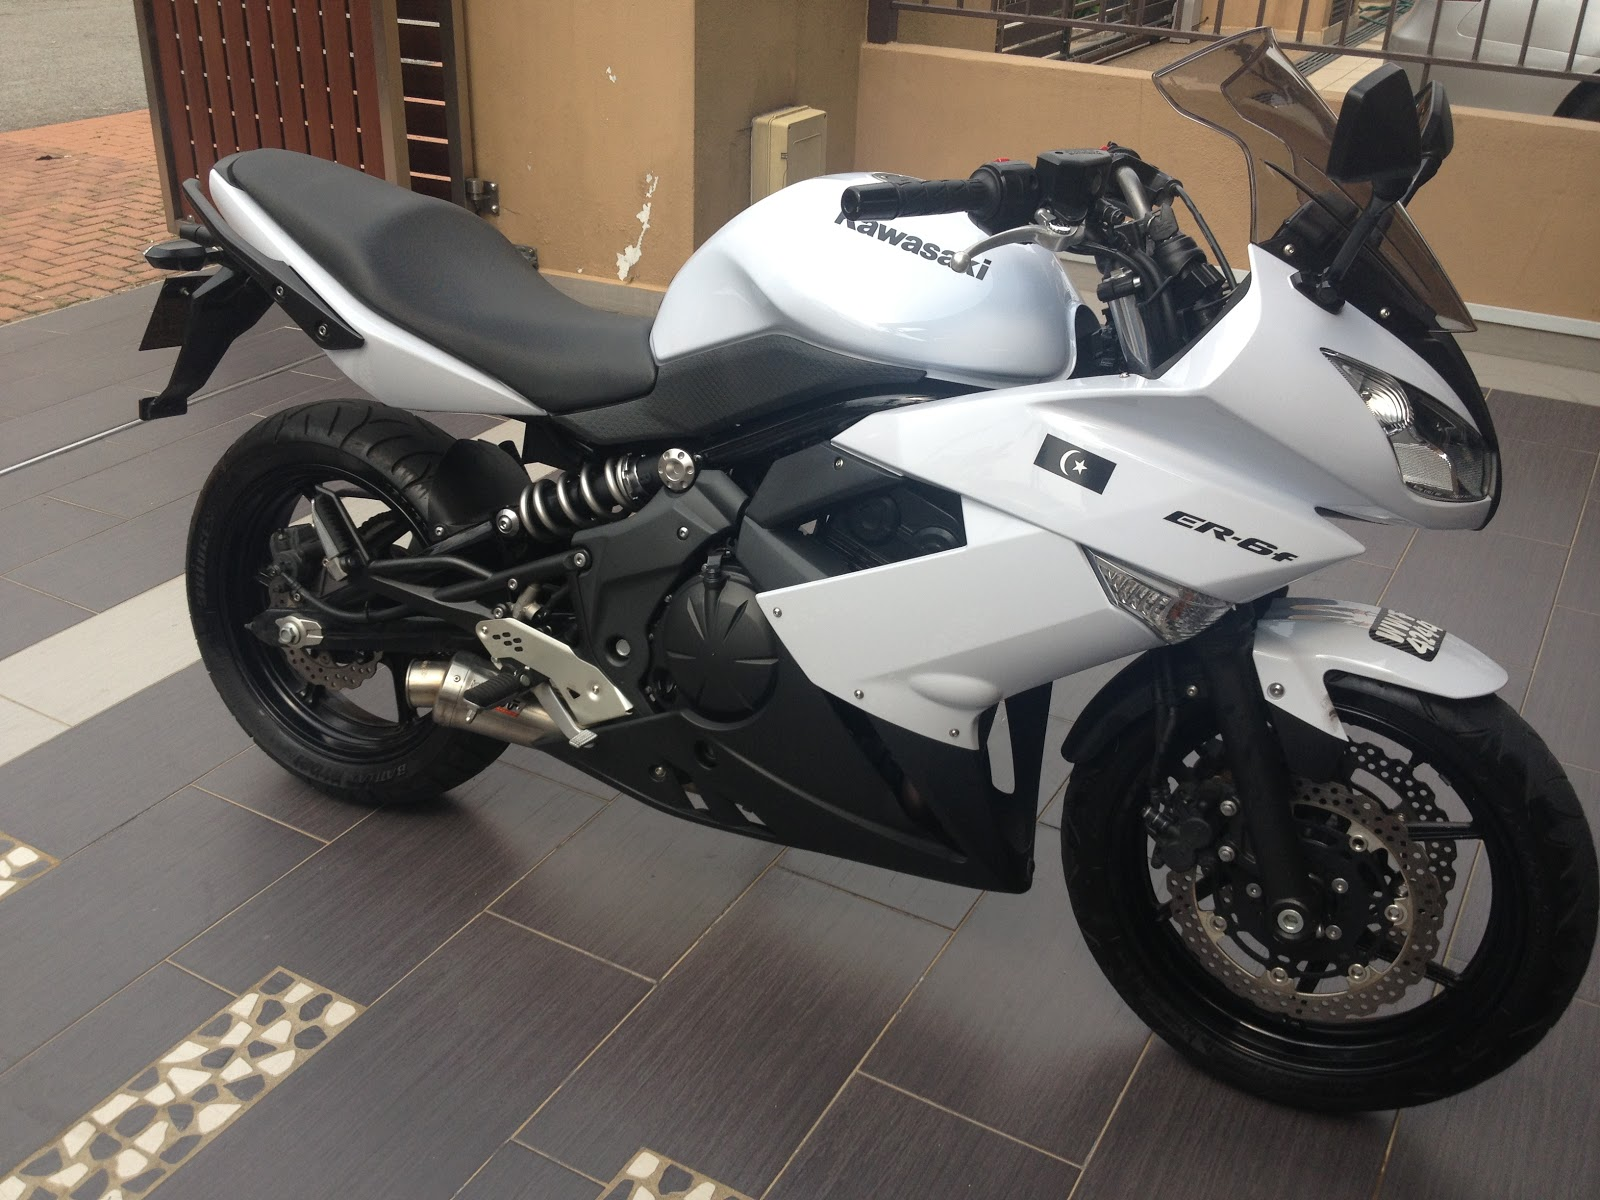 Super Great Sportbikes Kawasaki Er6f 2010 2012 Sold